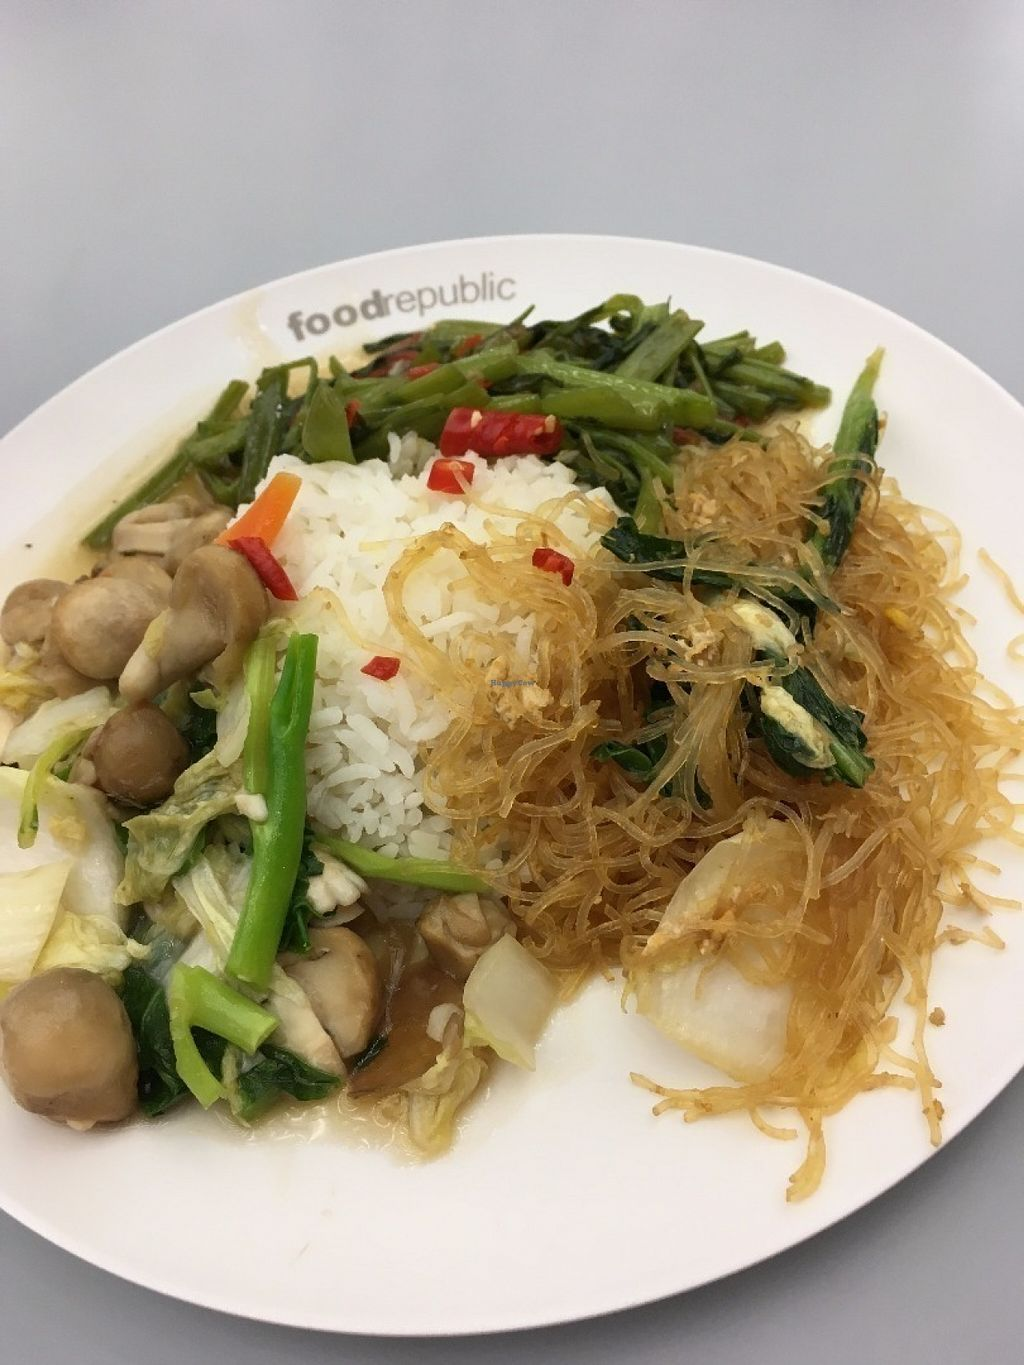 "Photo of Porridge A-La-Carte  by <a href=""/members/profile/Chungche%20Huang"">Chungche Huang</a> <br/>What I ordered, 3 dishes with rice, 70 Baht <br/> July 15, 2016  - <a href='/contact/abuse/image/76558/159932'>Report</a>"